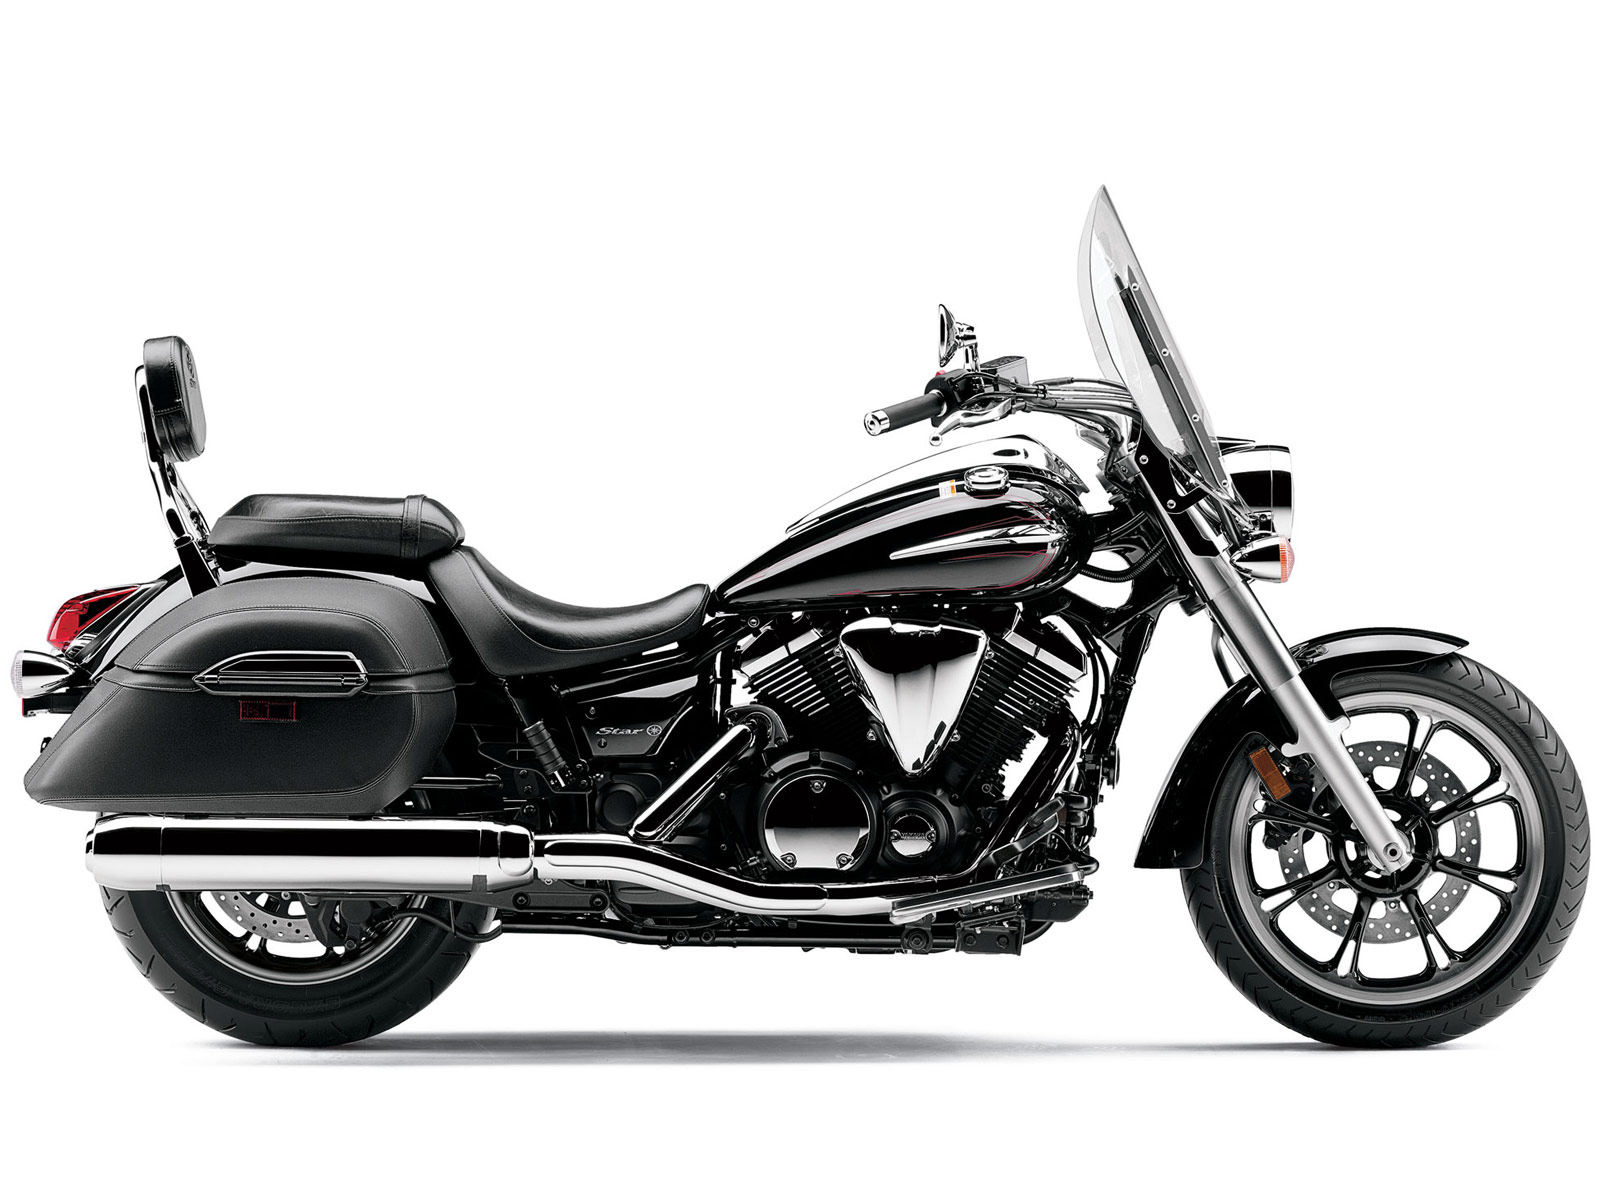 2015 Yamaha V-Star 1300 Tourer Review - Total Motorcycle